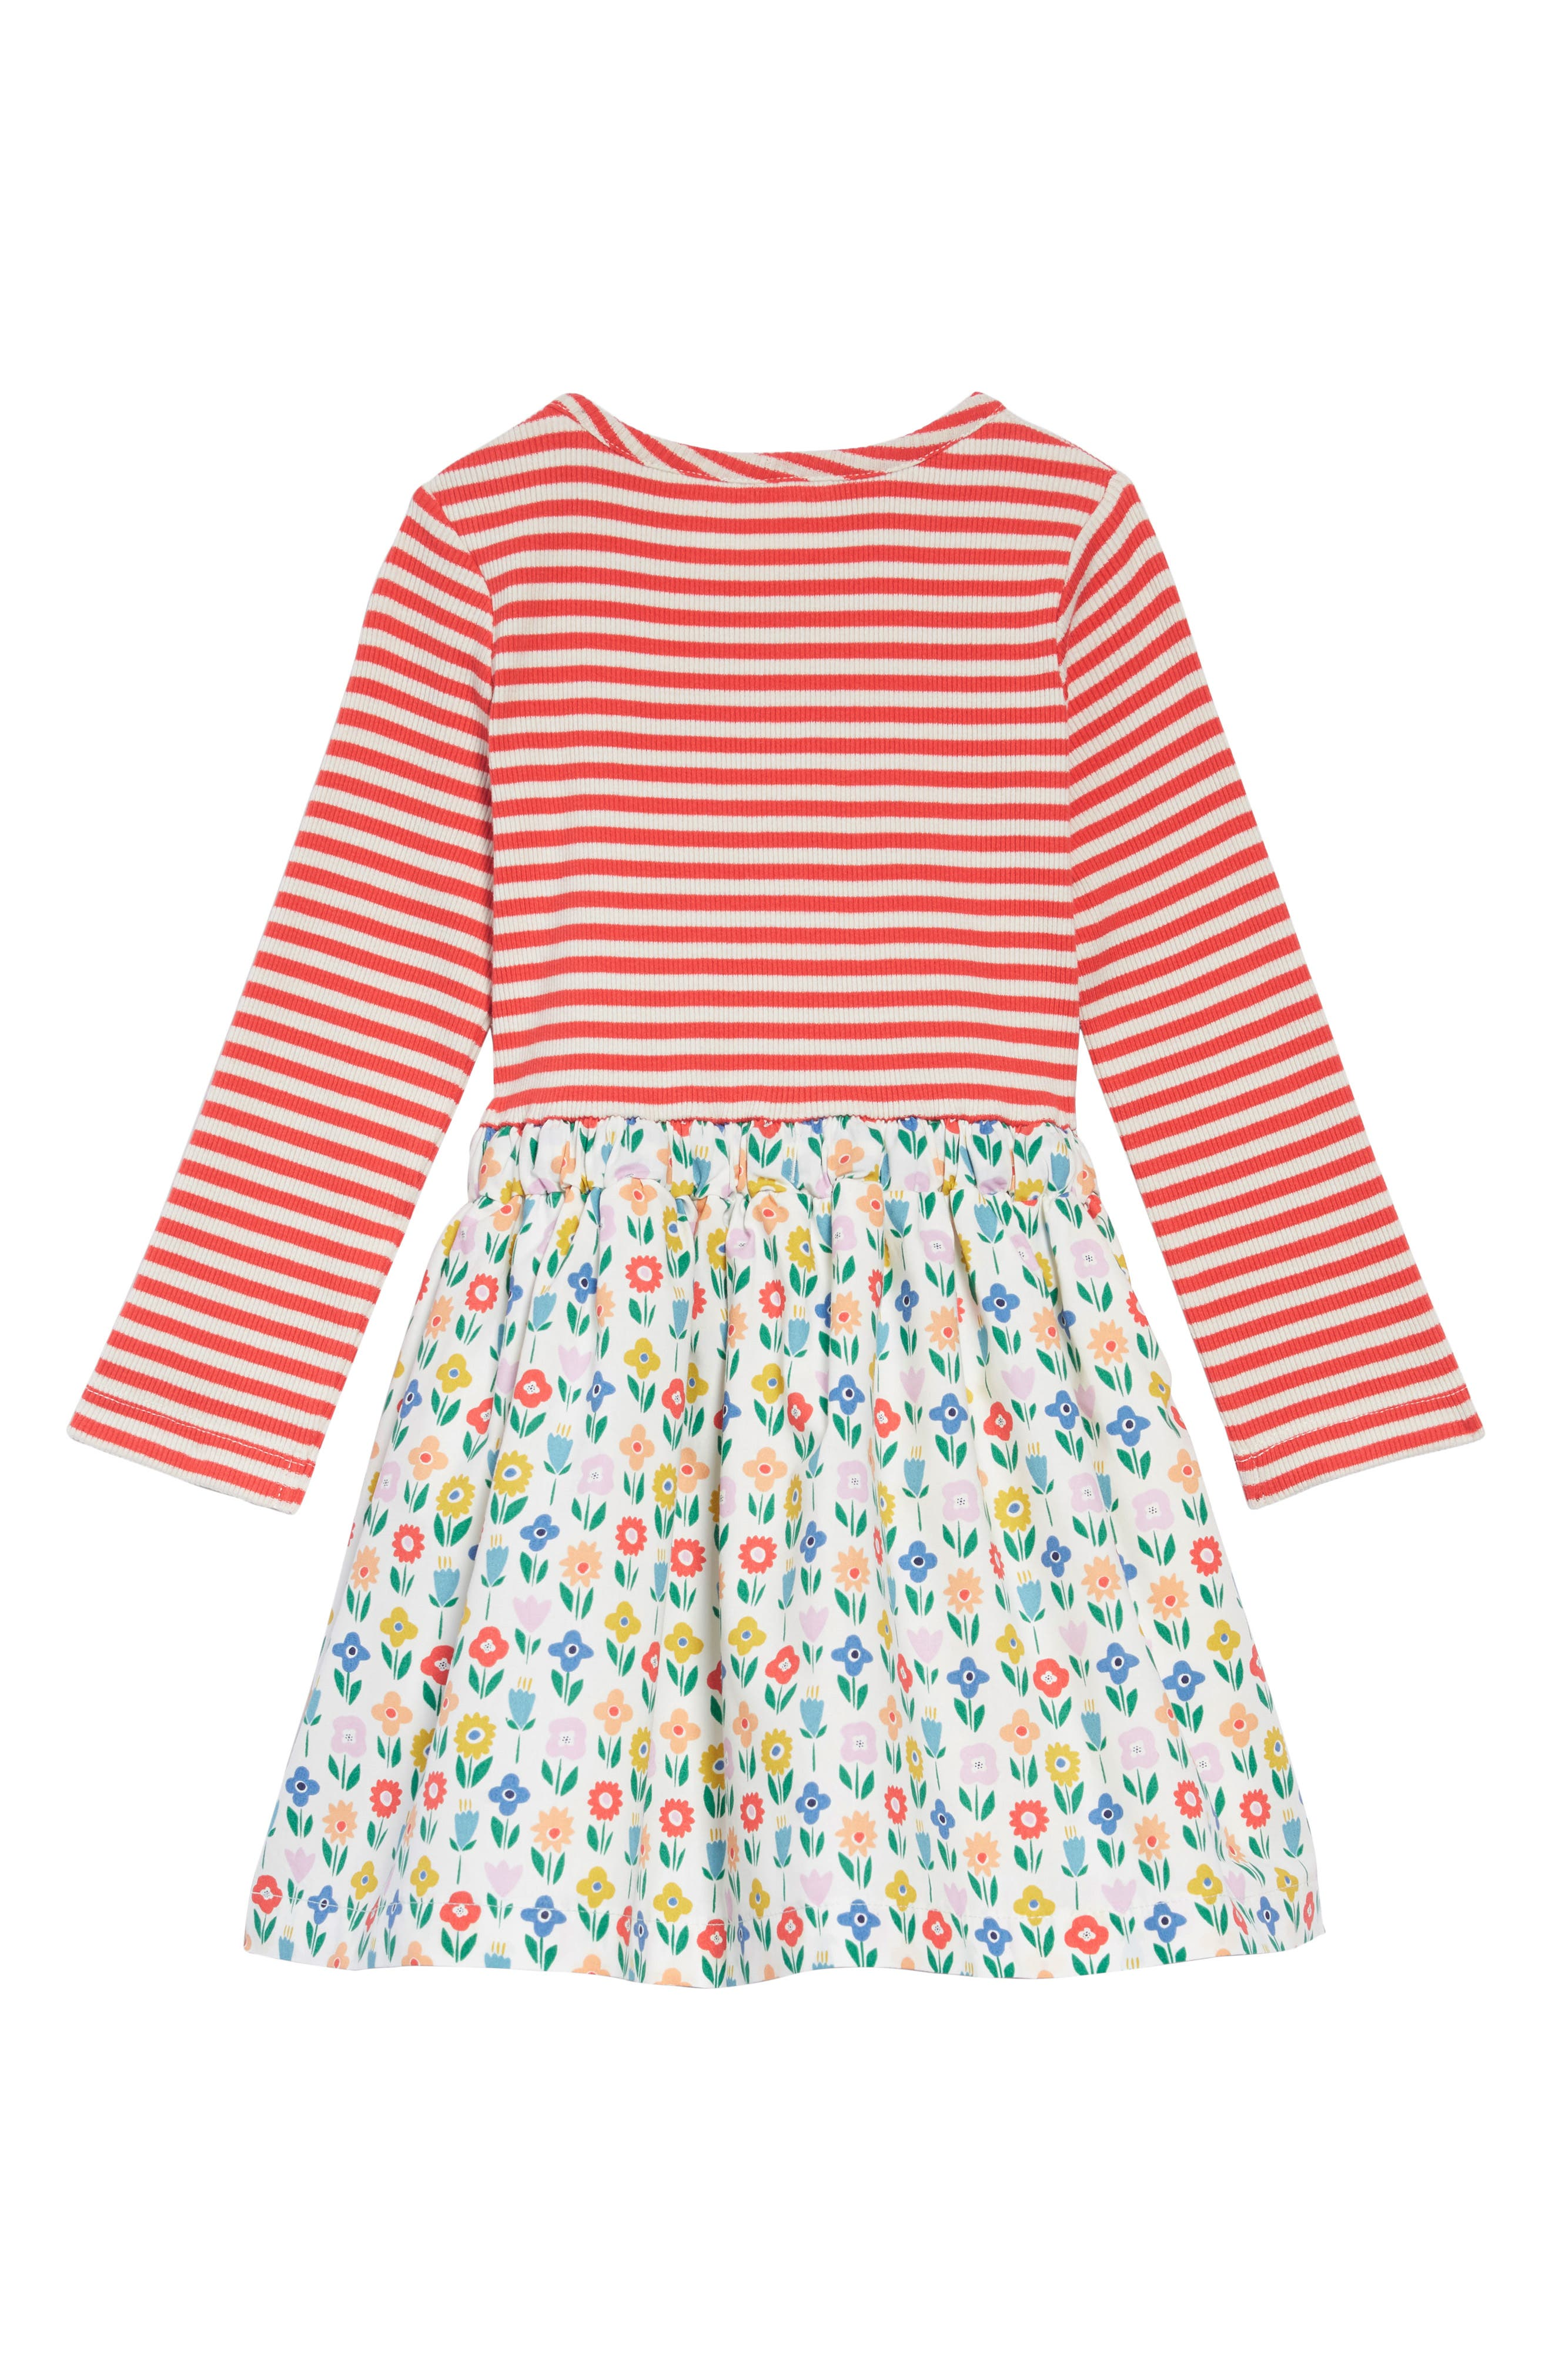 Hotchpotch Dress,                             Alternate thumbnail 2, color,                             IVO IVORY FLOWER PATCH